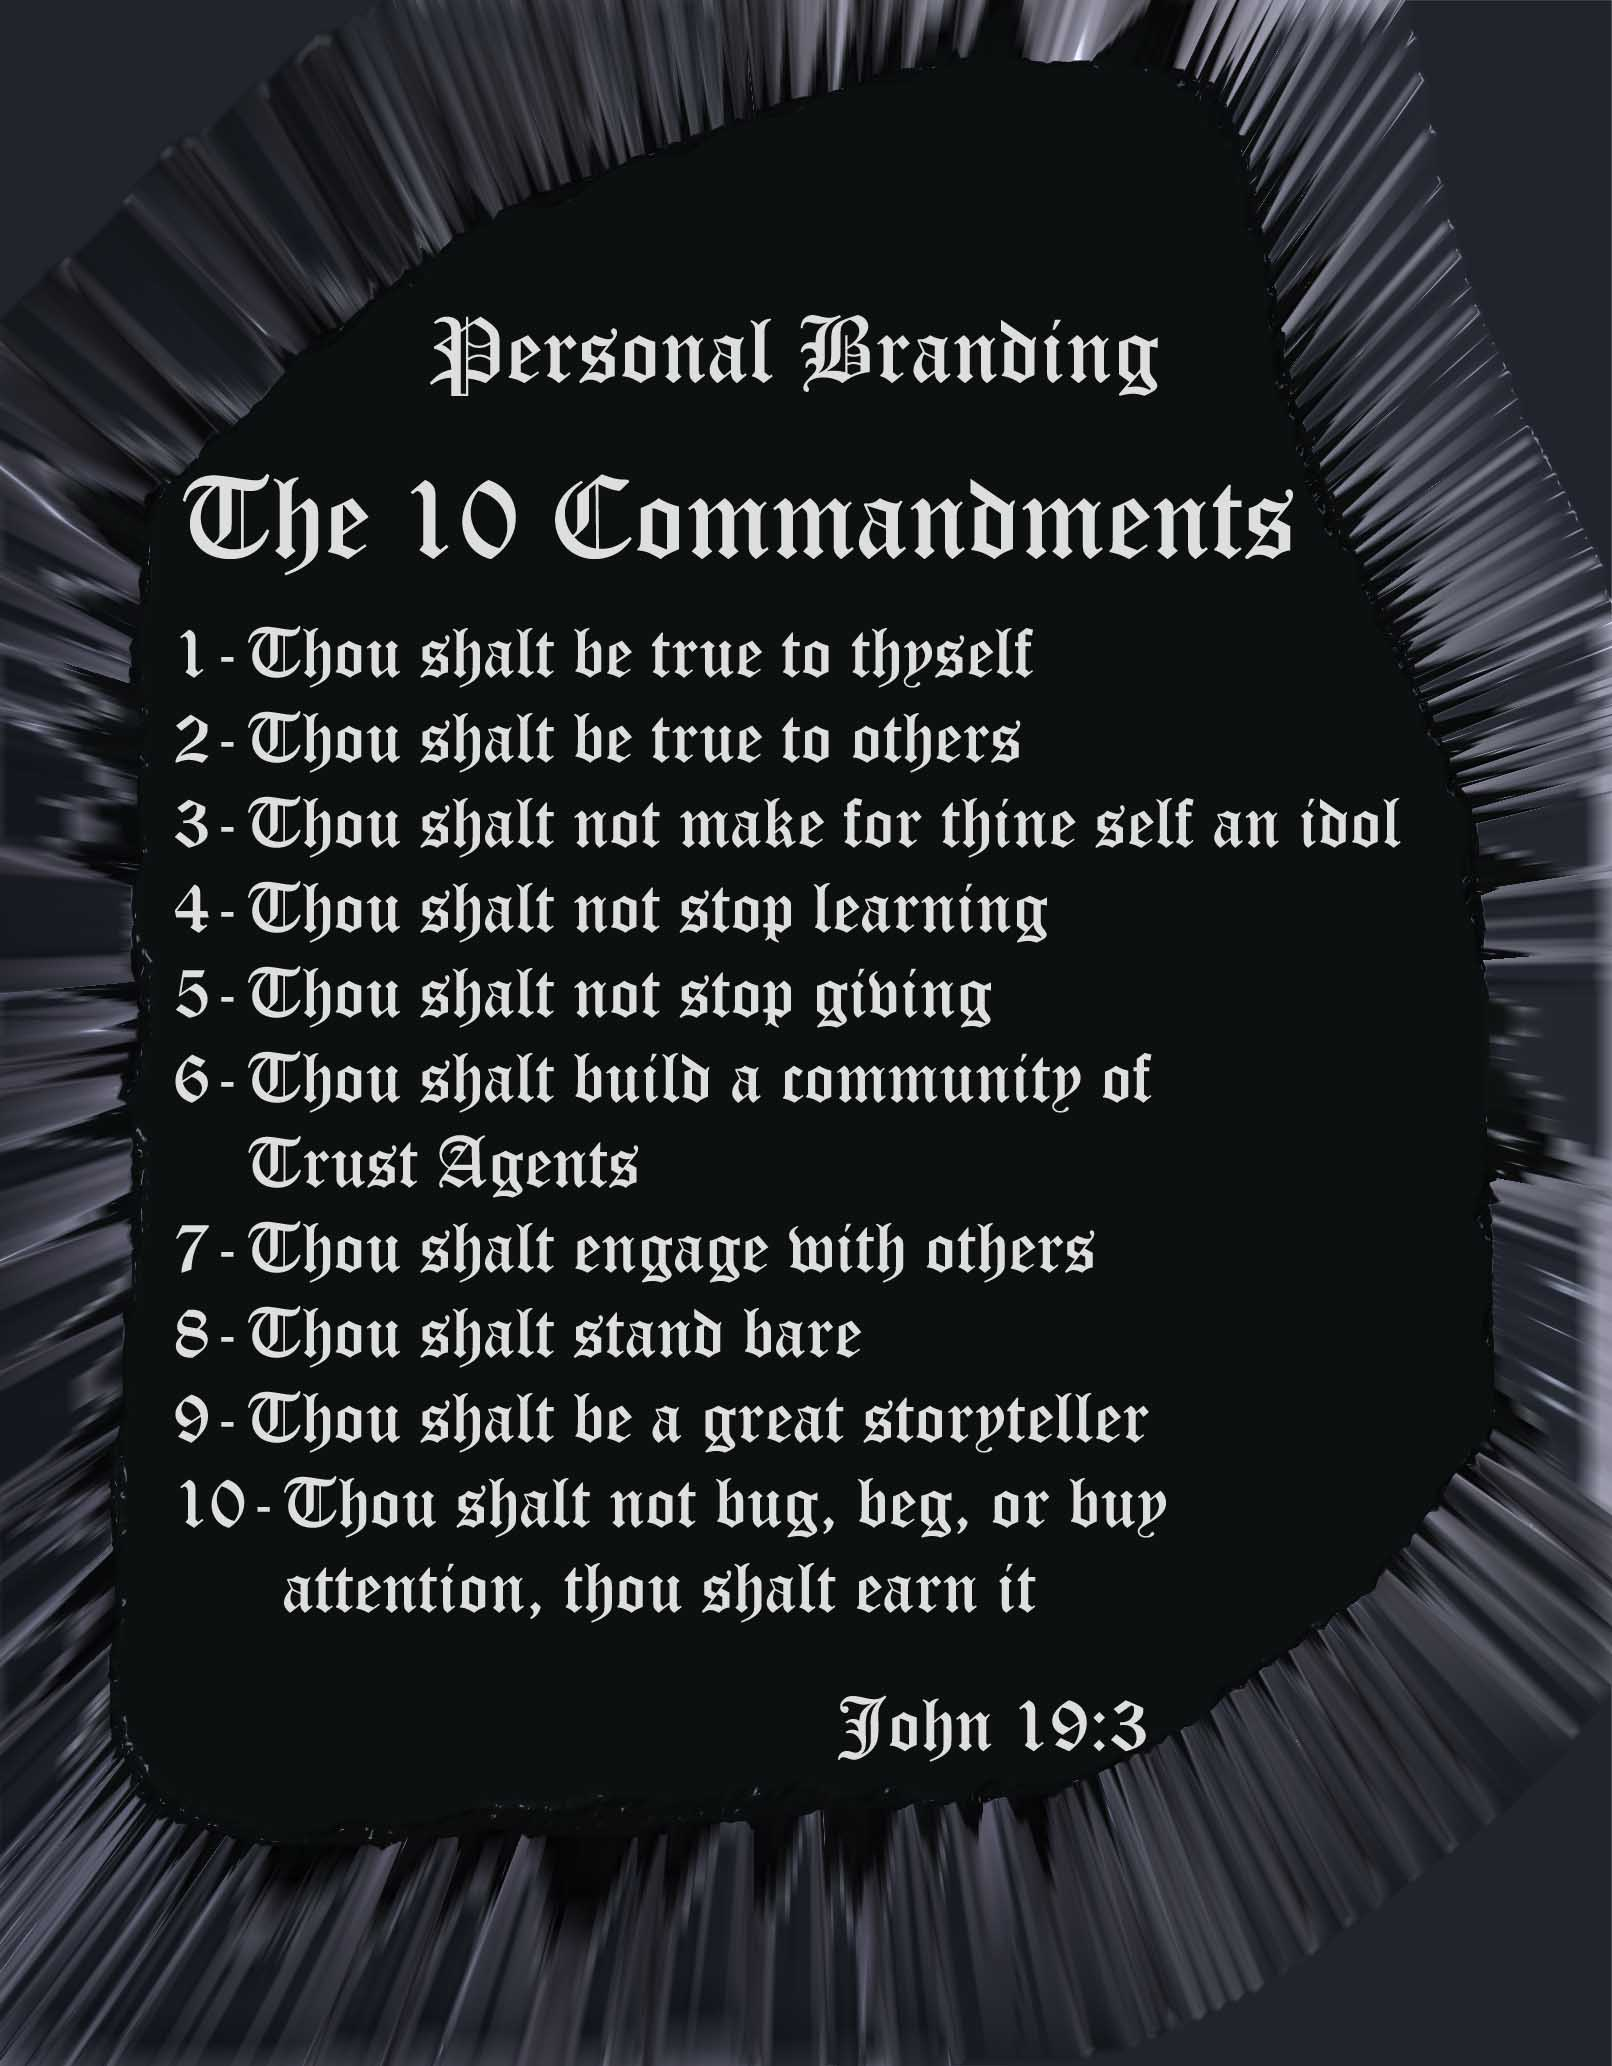 10 Commandments of Personal Branding